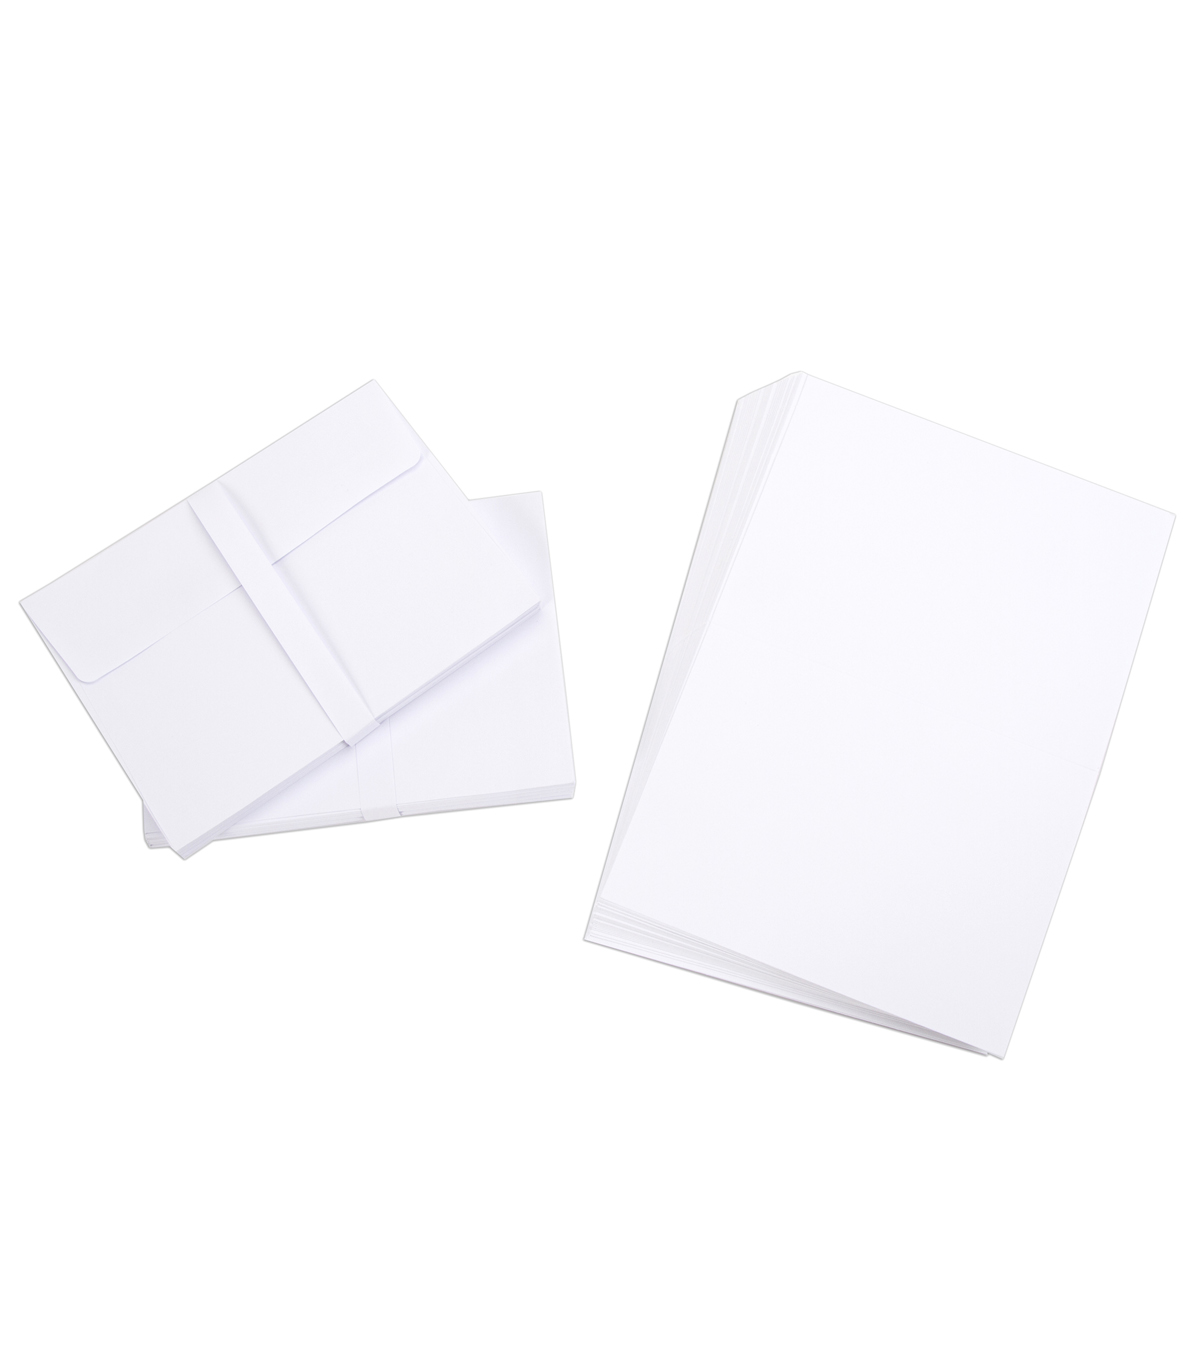 Blank cards blank cards and envelopes card stock joann coredinations cardenvelopes a7 white 50 pack magicingreecefo Image collections